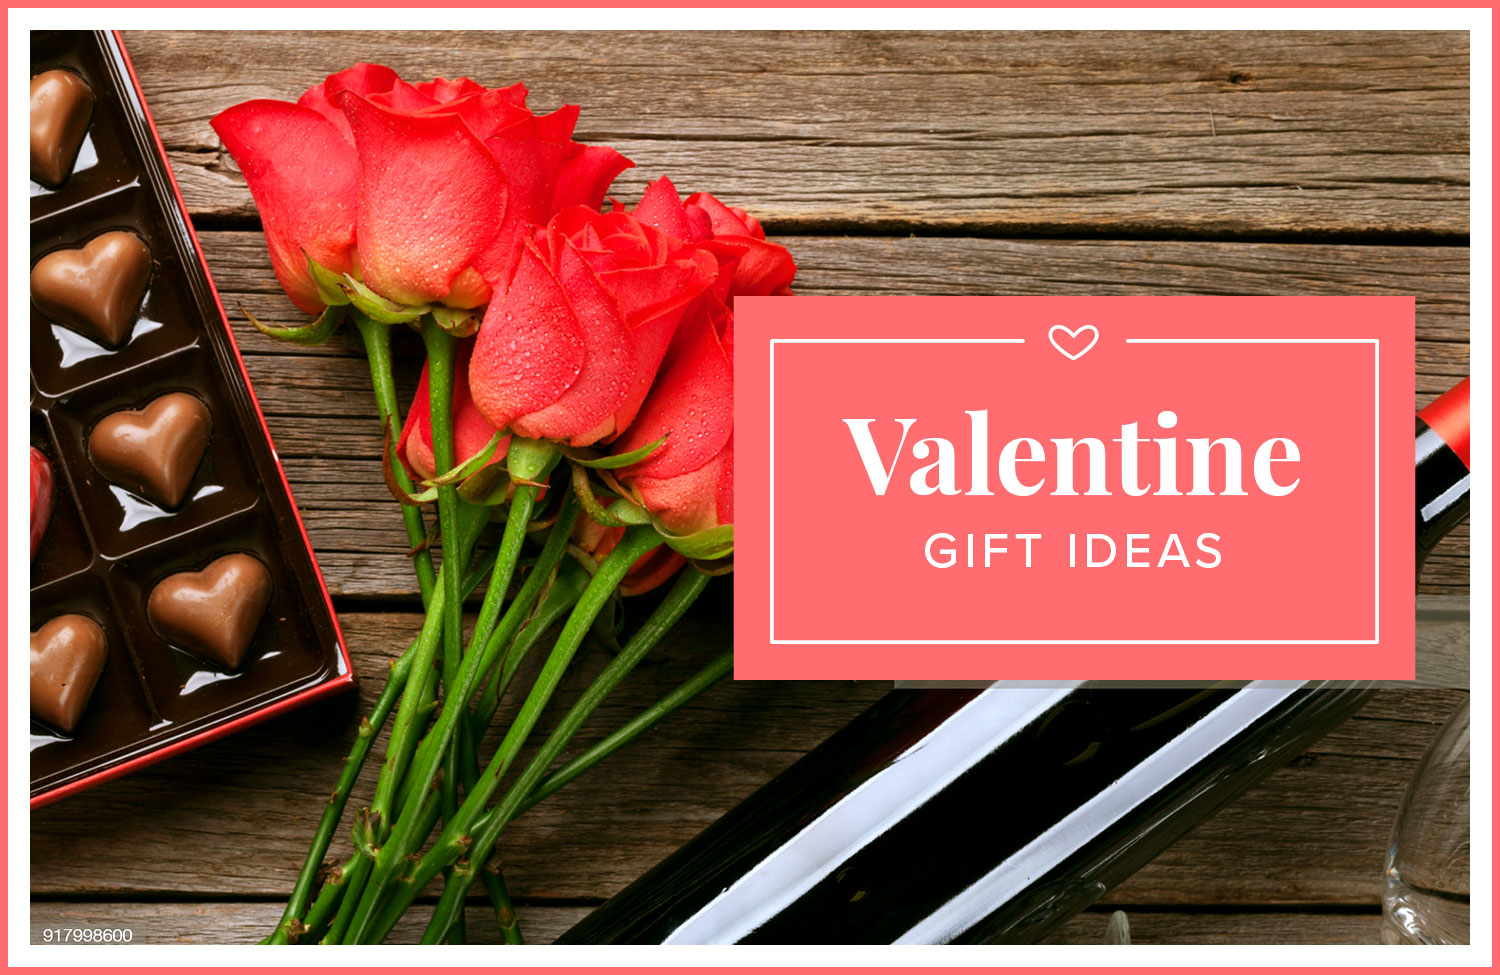 photo of roses and chocolates on a wood table